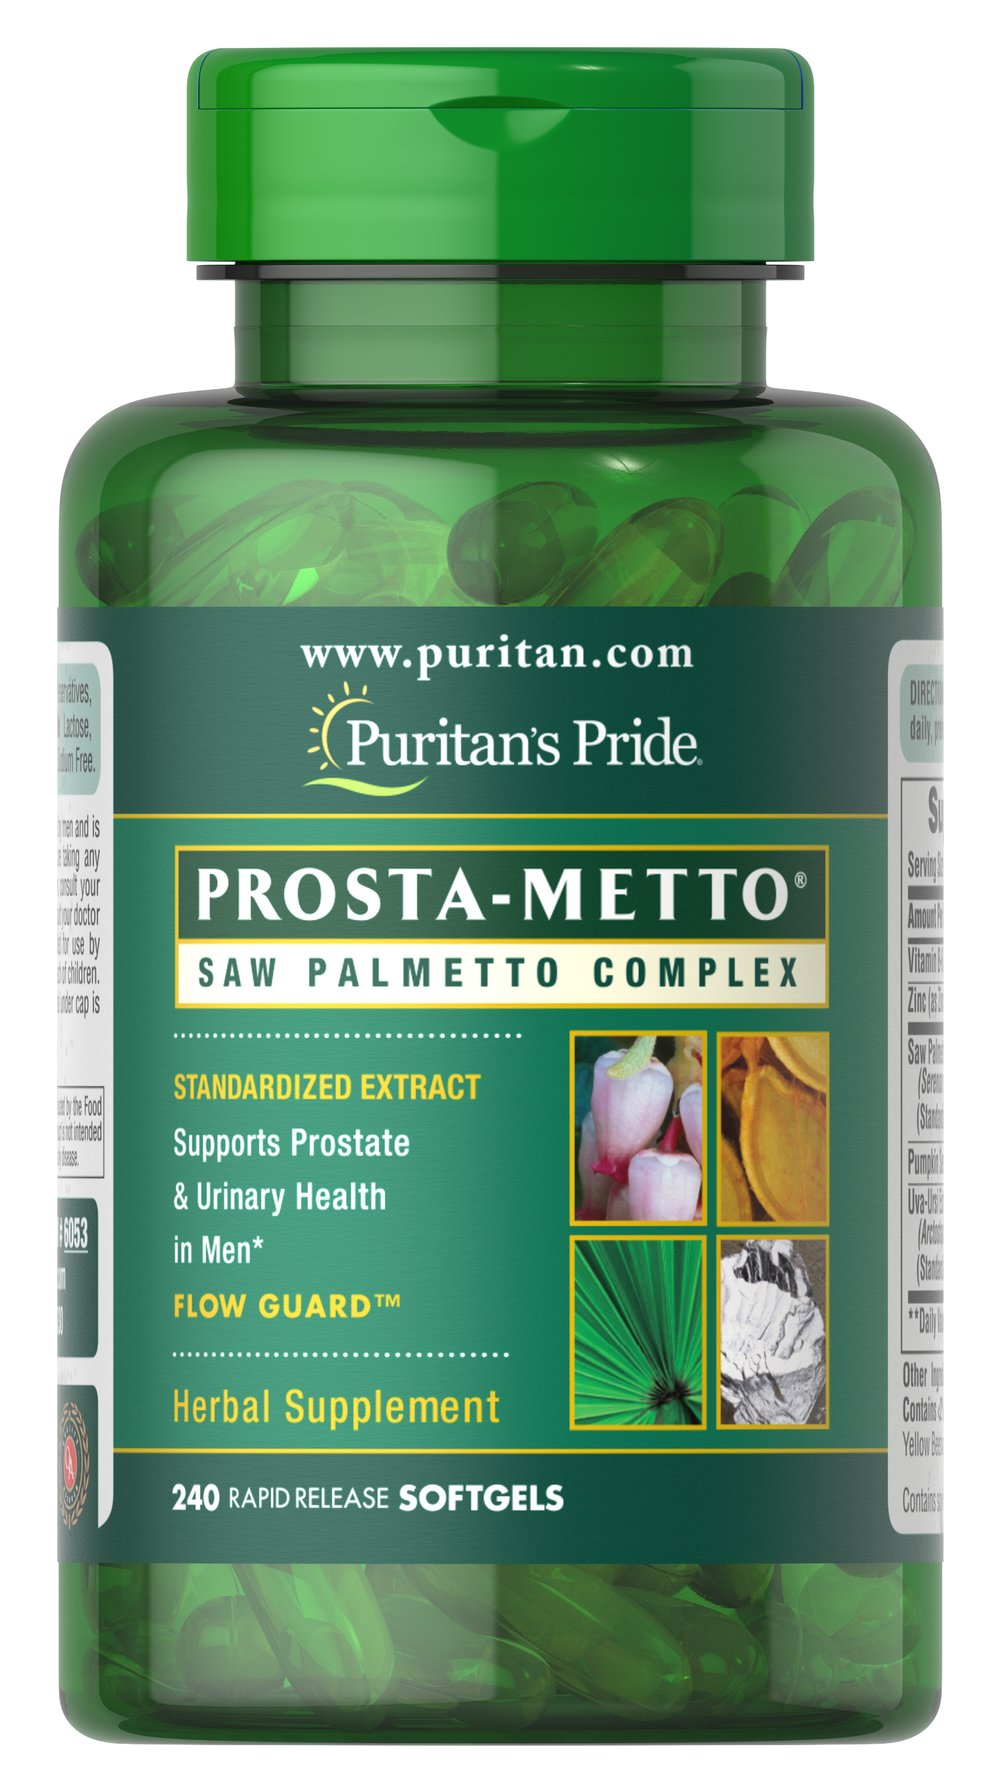 Prosta-Metto® Saw Palmetto Complex For Men <p>Extra Strength Prosta-Metto® softgels deliver 160 mg of standardized Saw Palmetto to support prostate and urinary health in men.** Saw Palmetto is an extract derived from the berry of the Saw Palmetto tree and is the leading herb for men's health.** This formulation also includes Pumpkin Seed Oil, and Uva-Ursi, traditional ingredients for men's health, plus Zinc for the immune system.** </p> 240 Softgels  $44.99